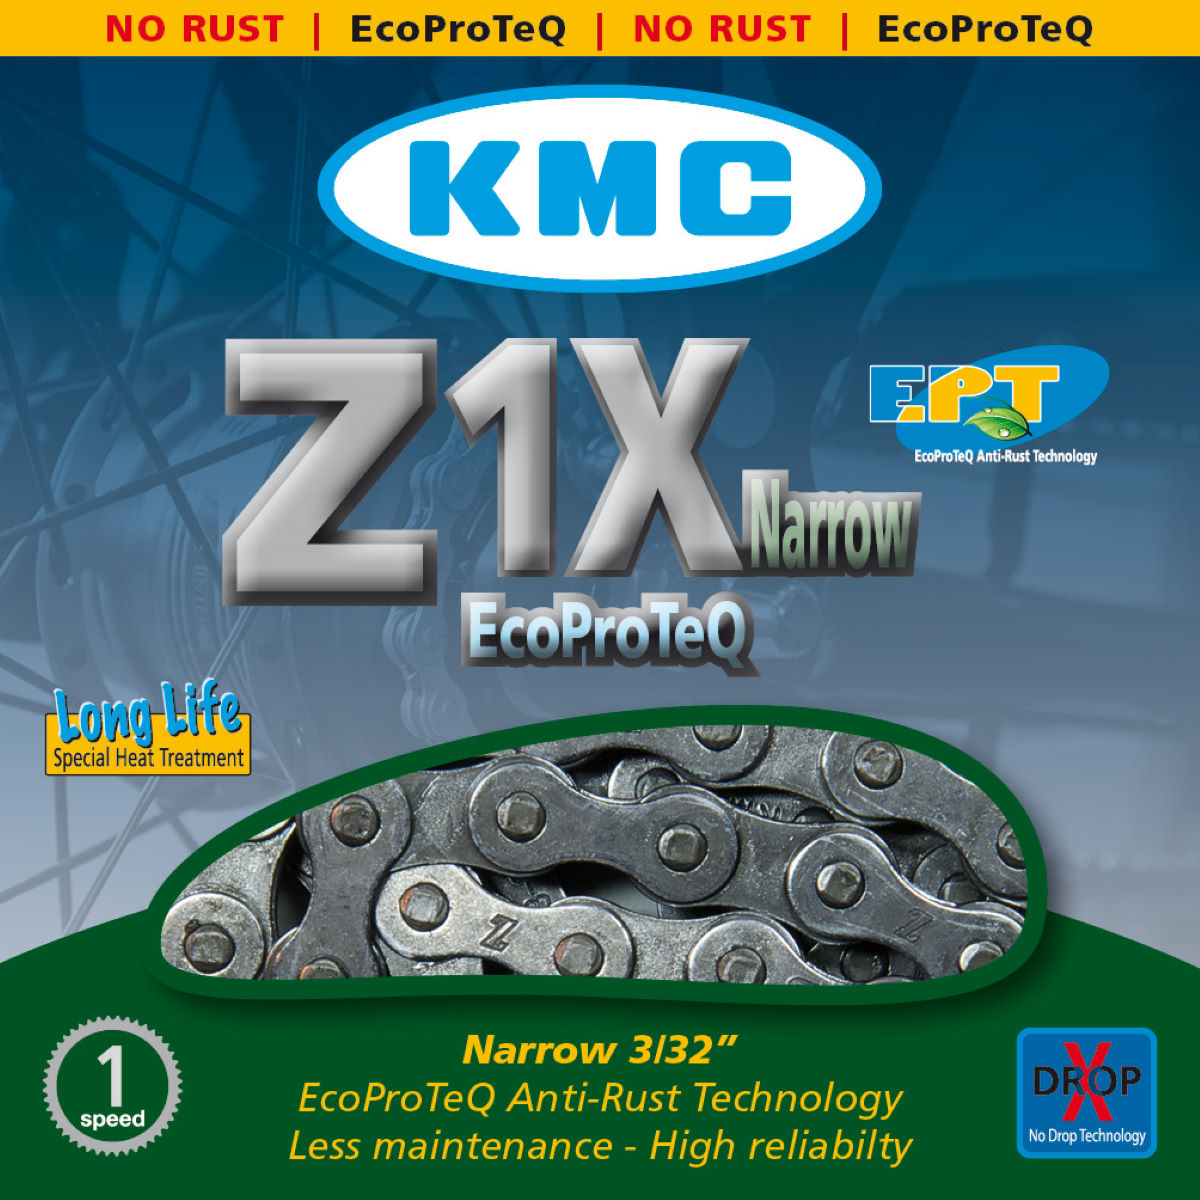 Chaîne KMC Z1X Narrow Ept à vitesse unique - 1 1/8'' 112 Links Gris